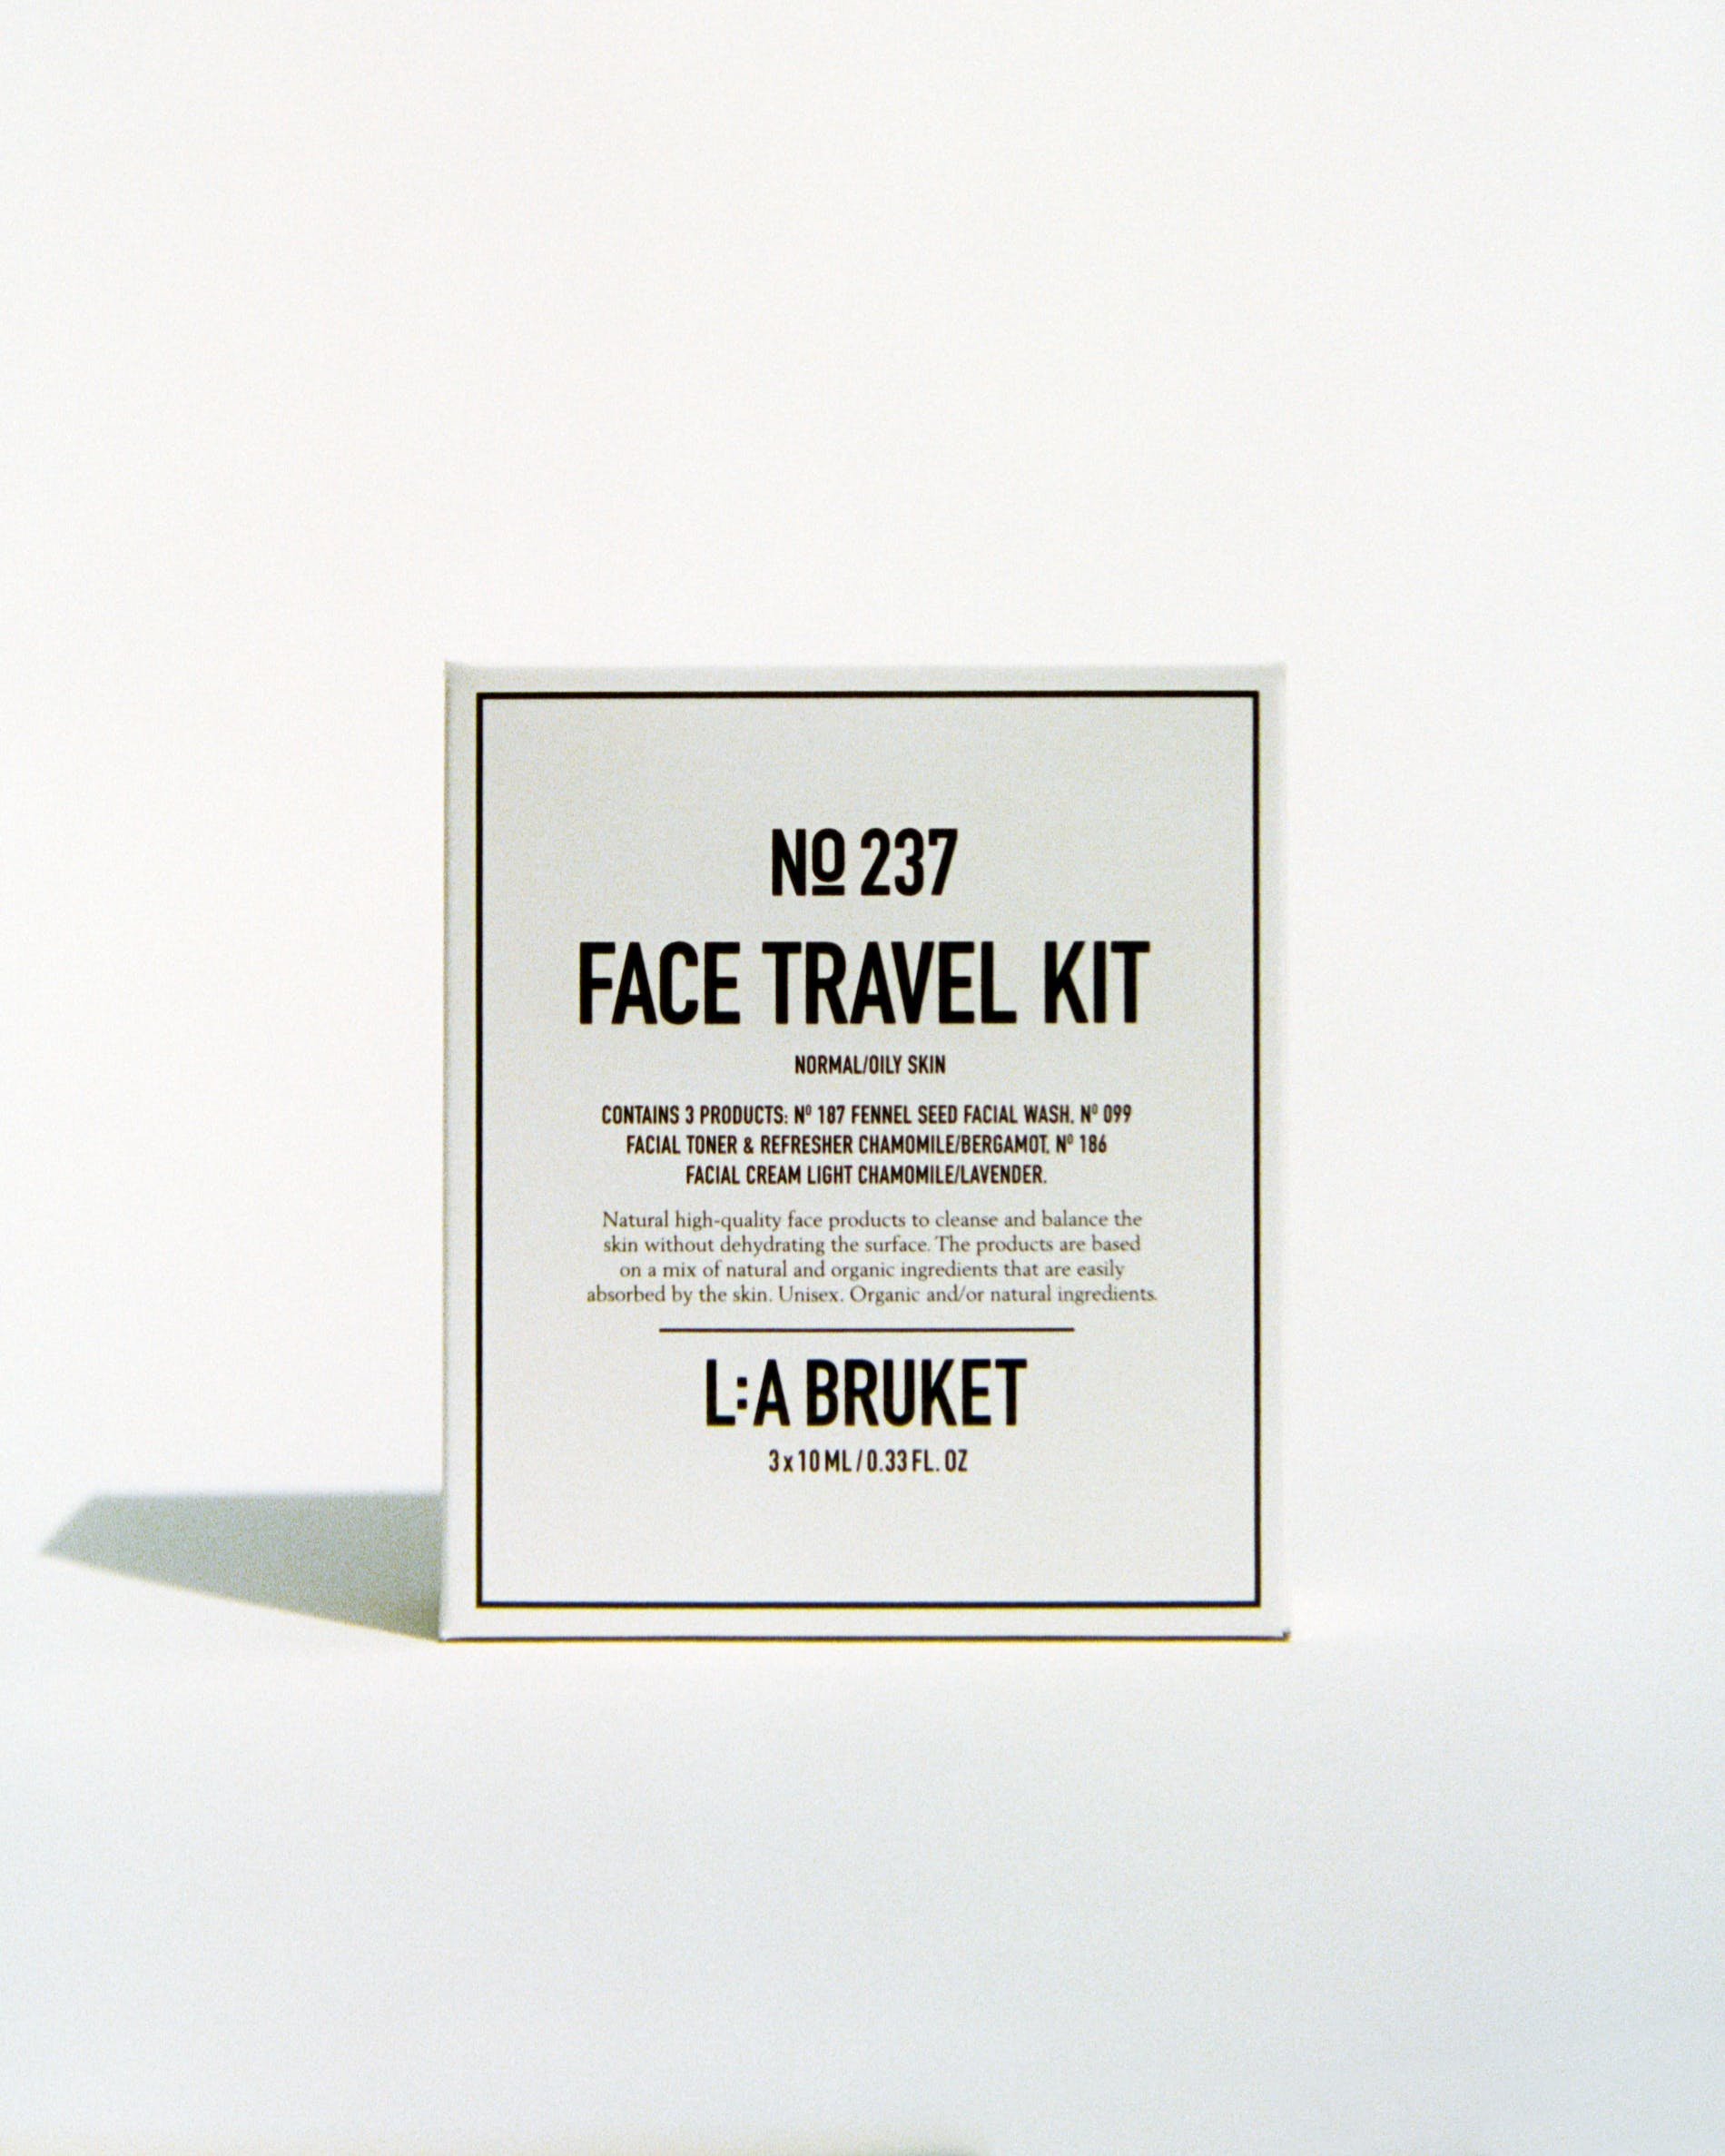 Face travel kit